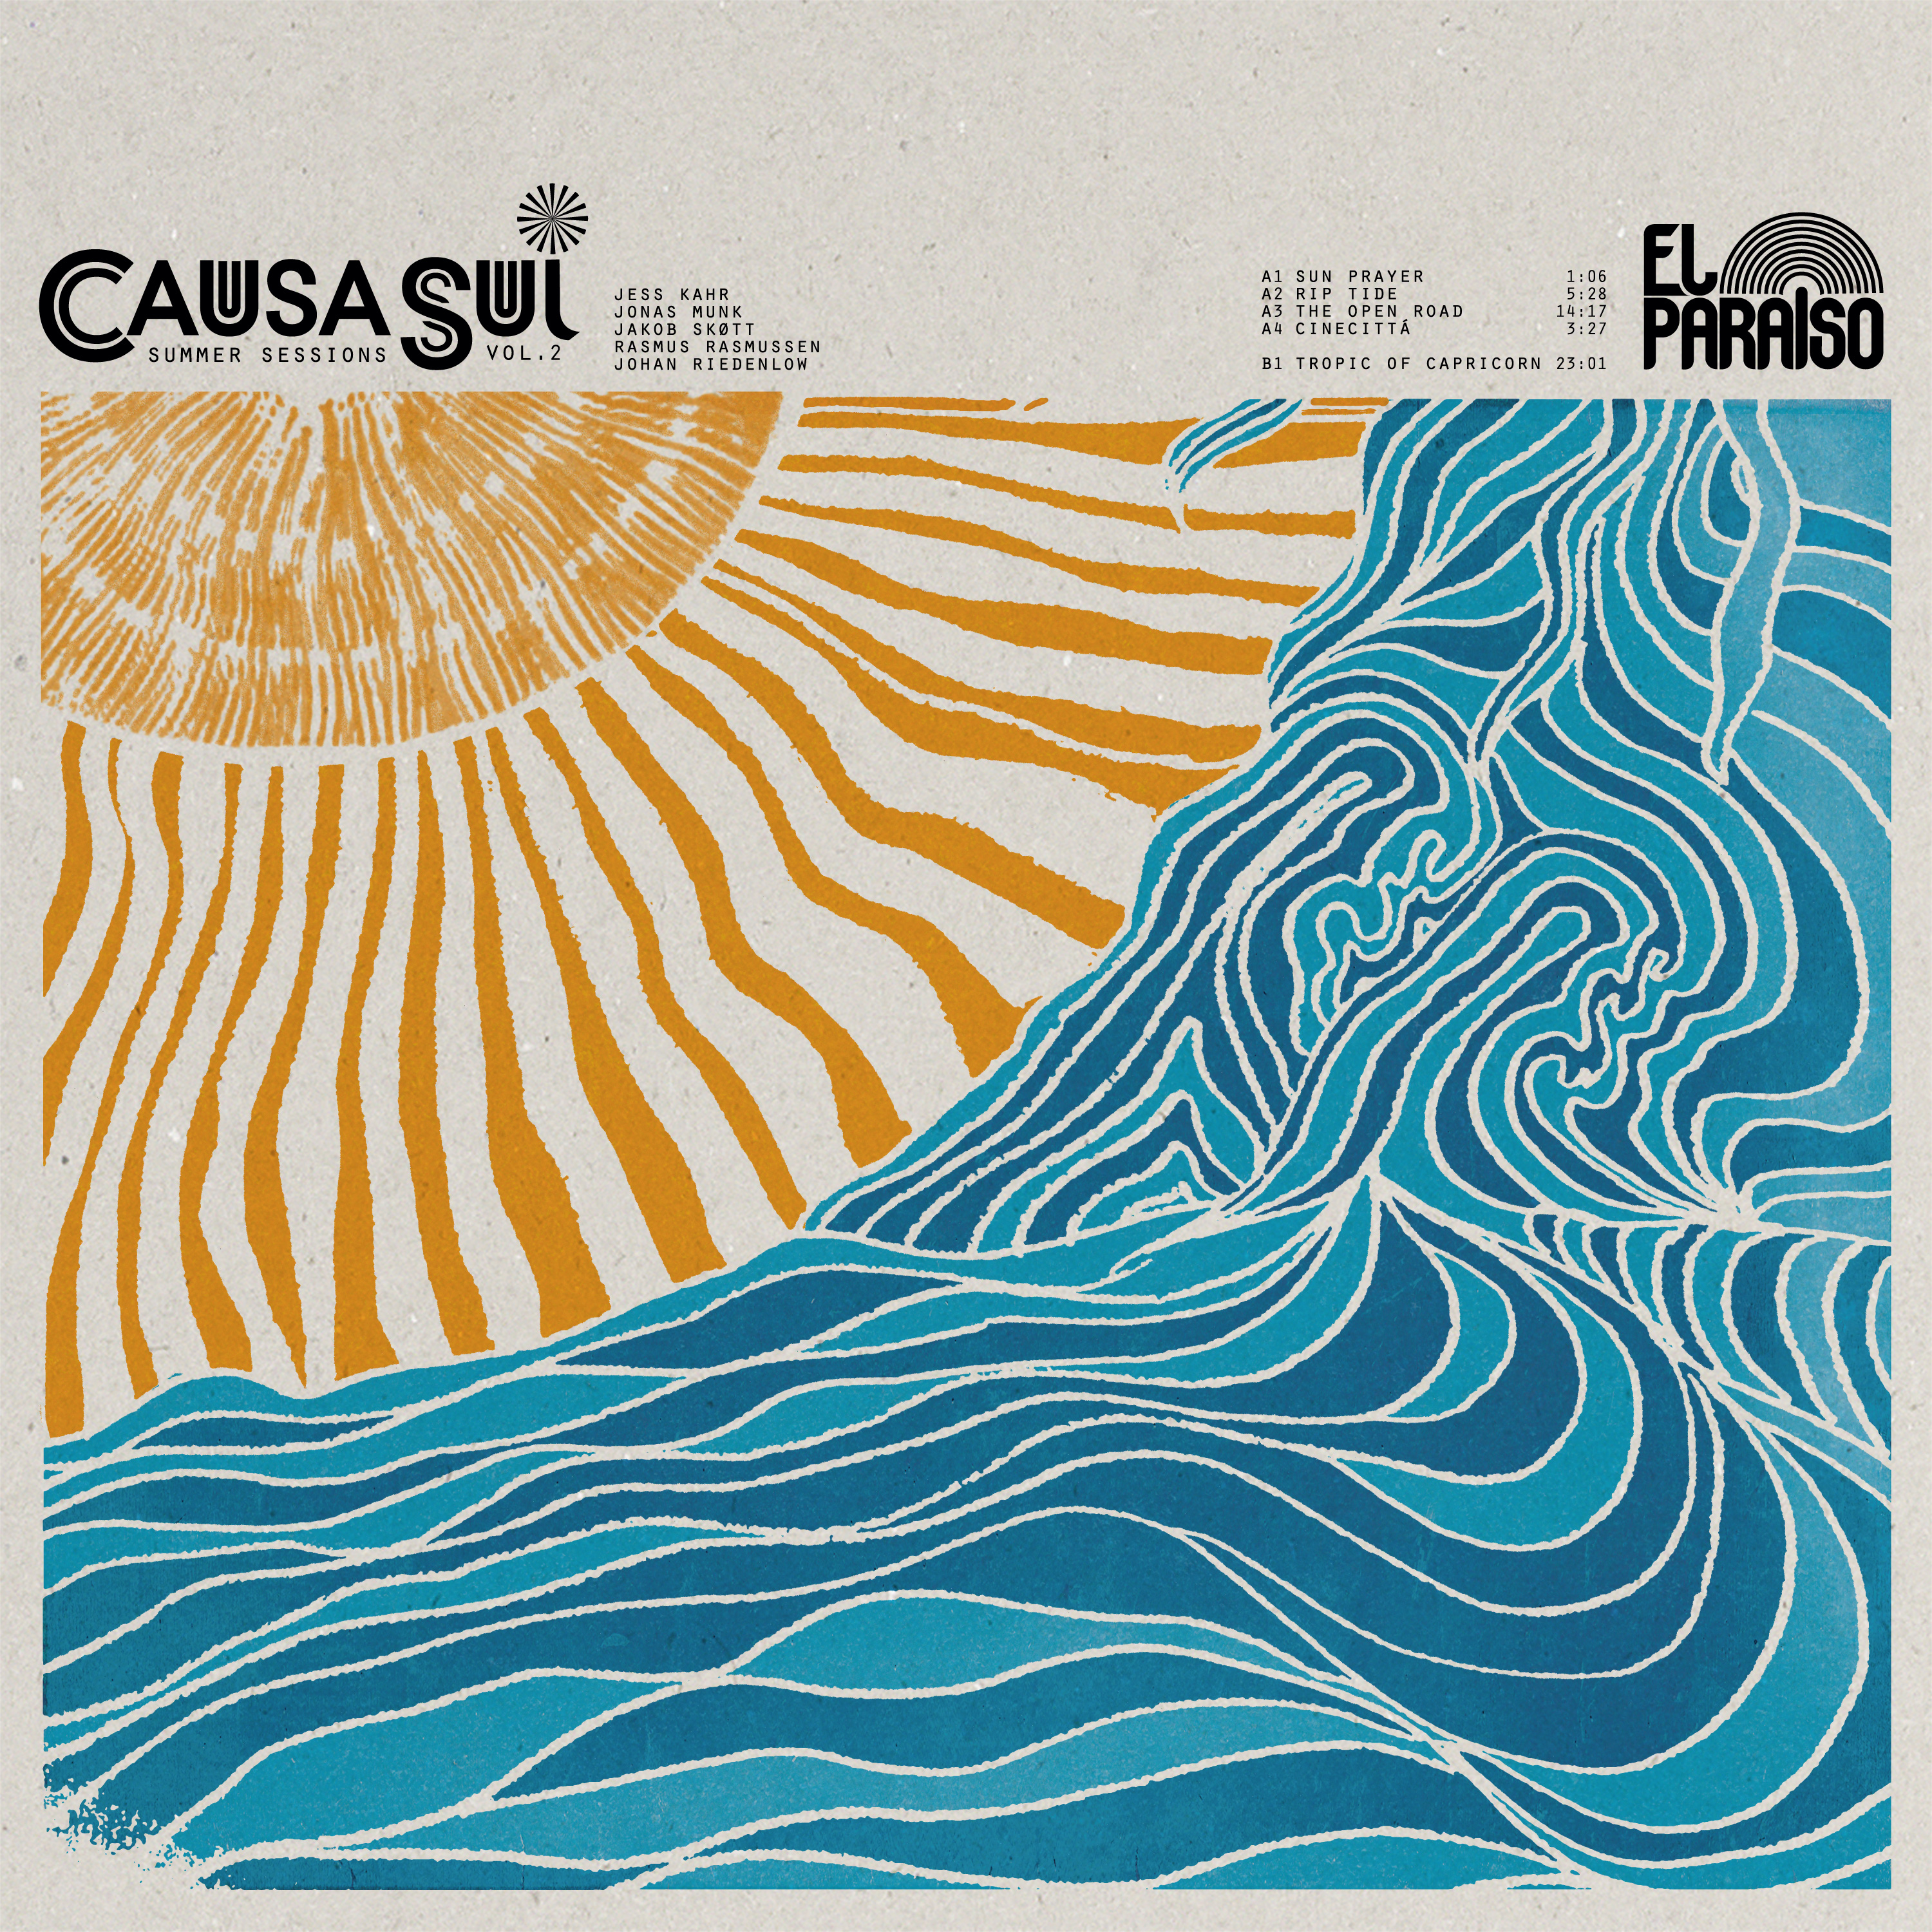 Causa Sui - Summer Sessions Vol. 2 [LP]